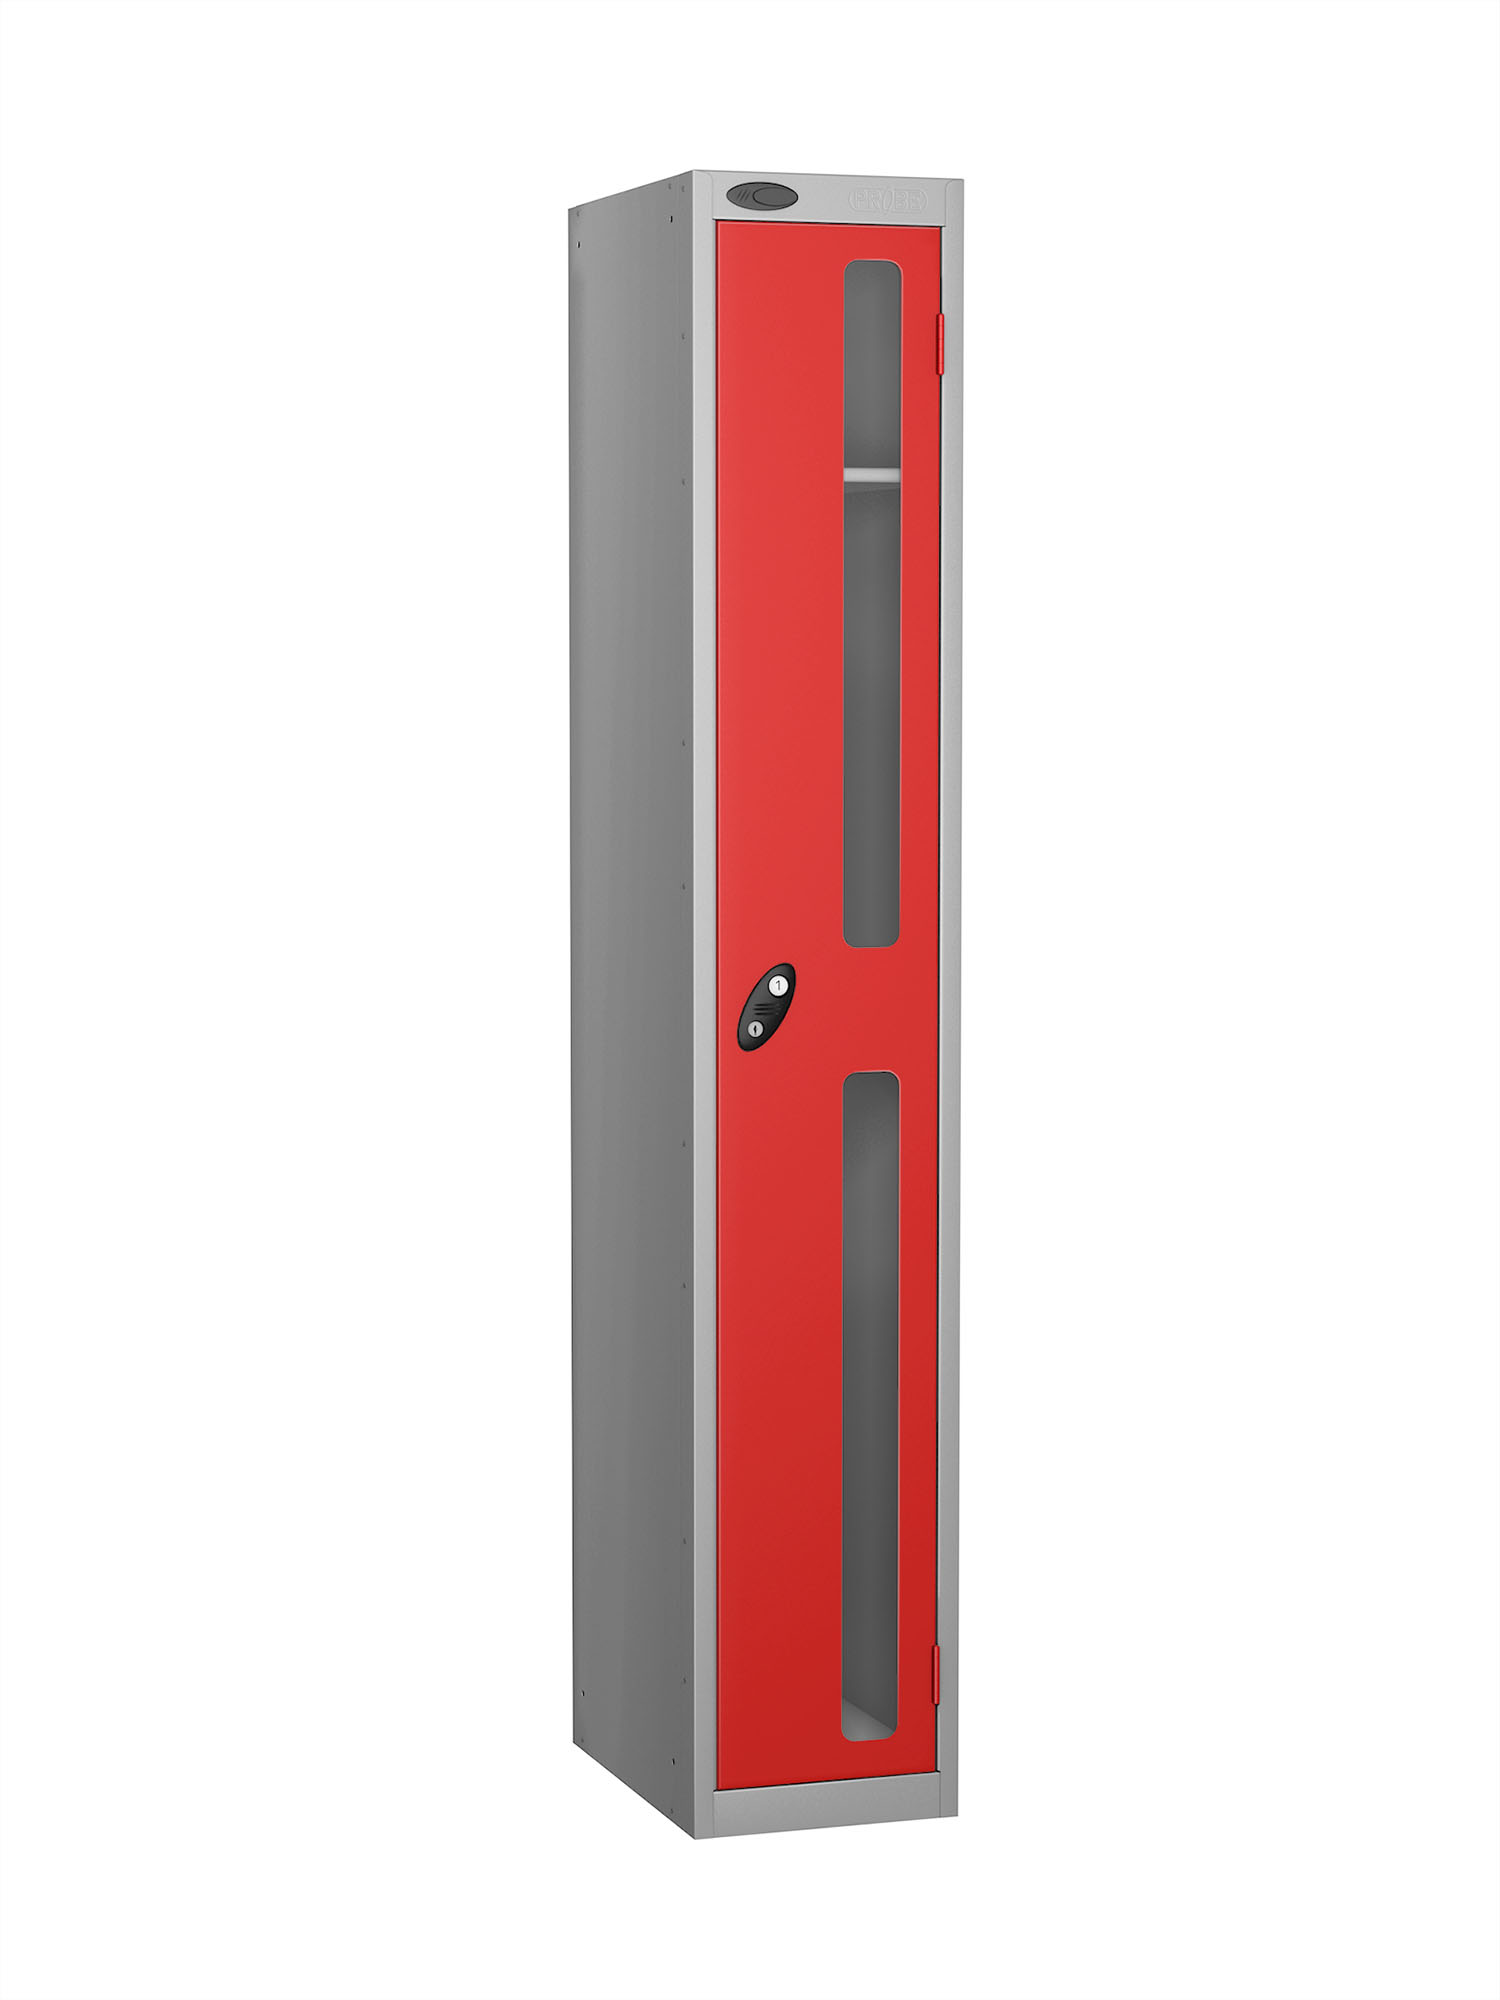 Probe 1 door vision panel anti-stock theft locker red